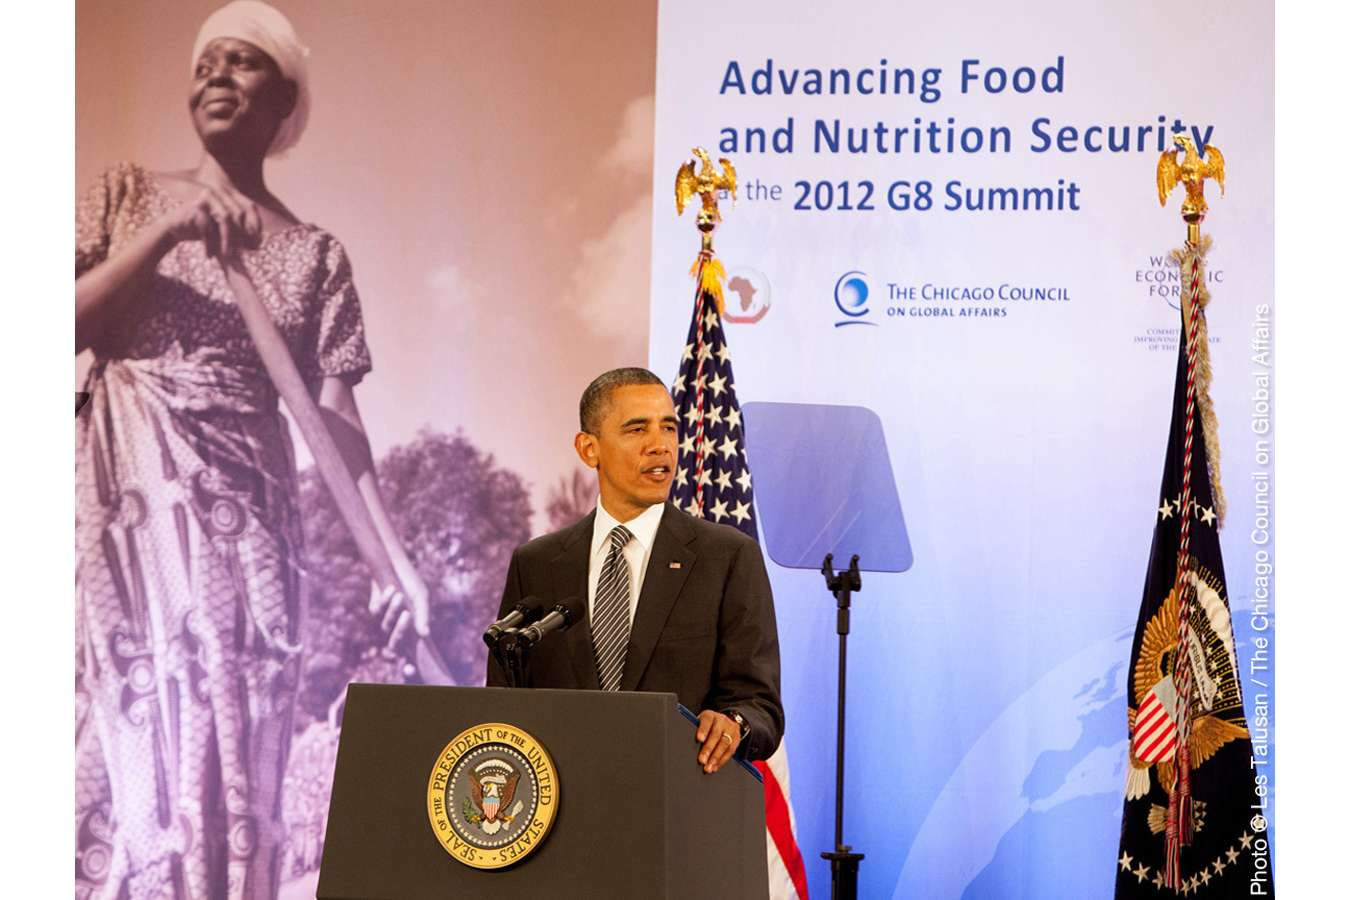 ccg8_1_prev_LesTalusan : President Obama Gives Keynote at Chicago Council Symposium, Washington DC 2012